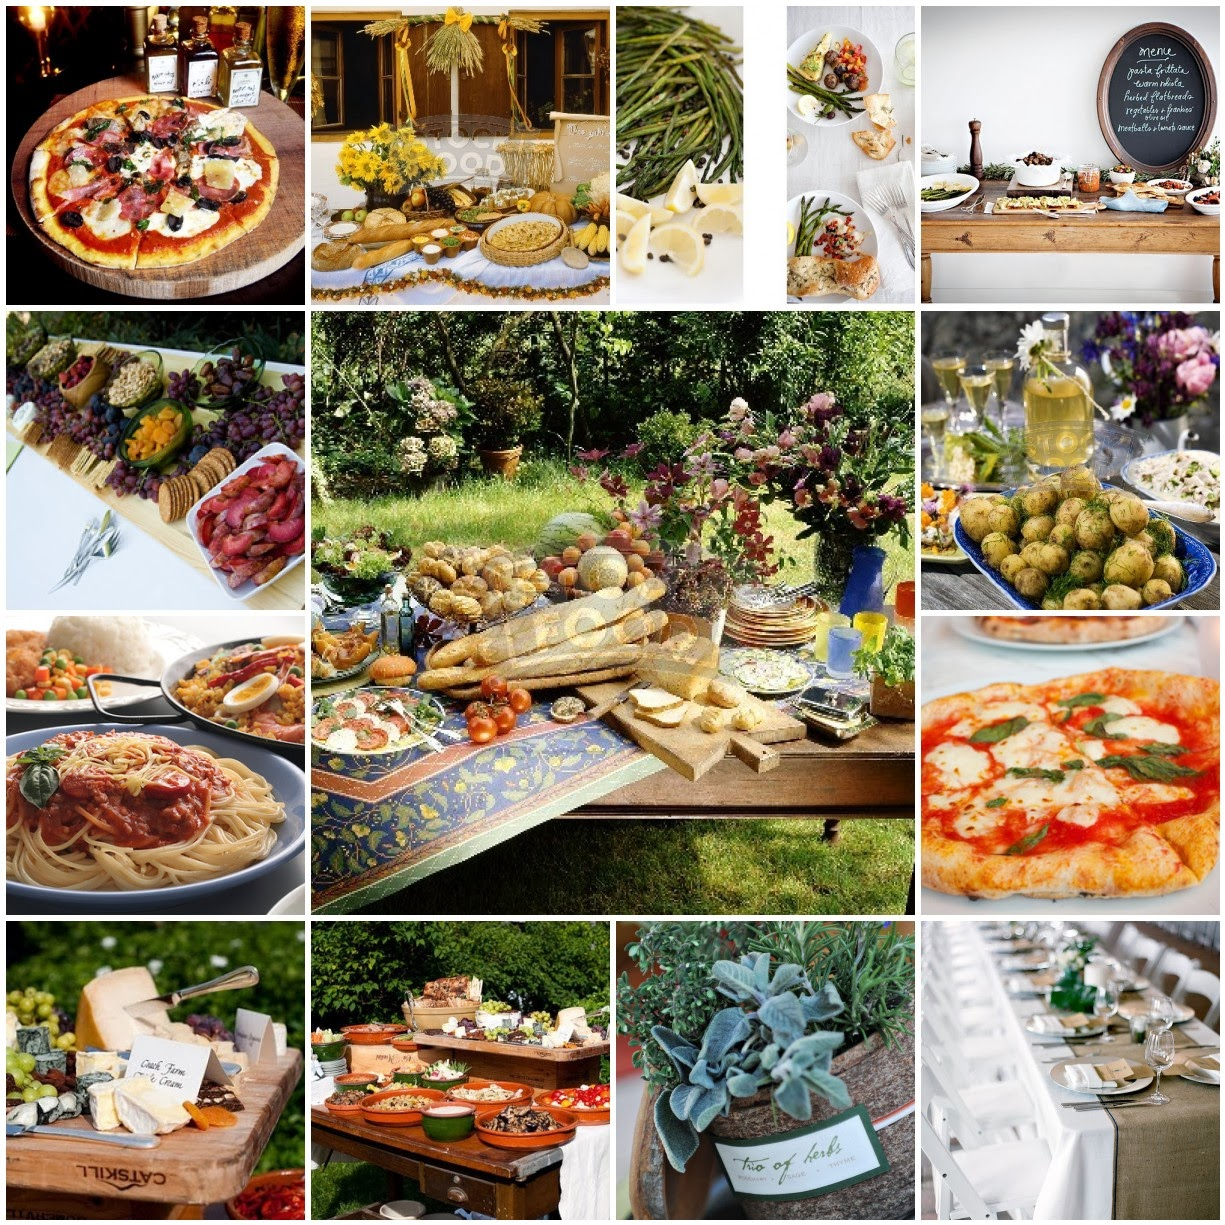 Catering Food For Wedding: Italian Wedding